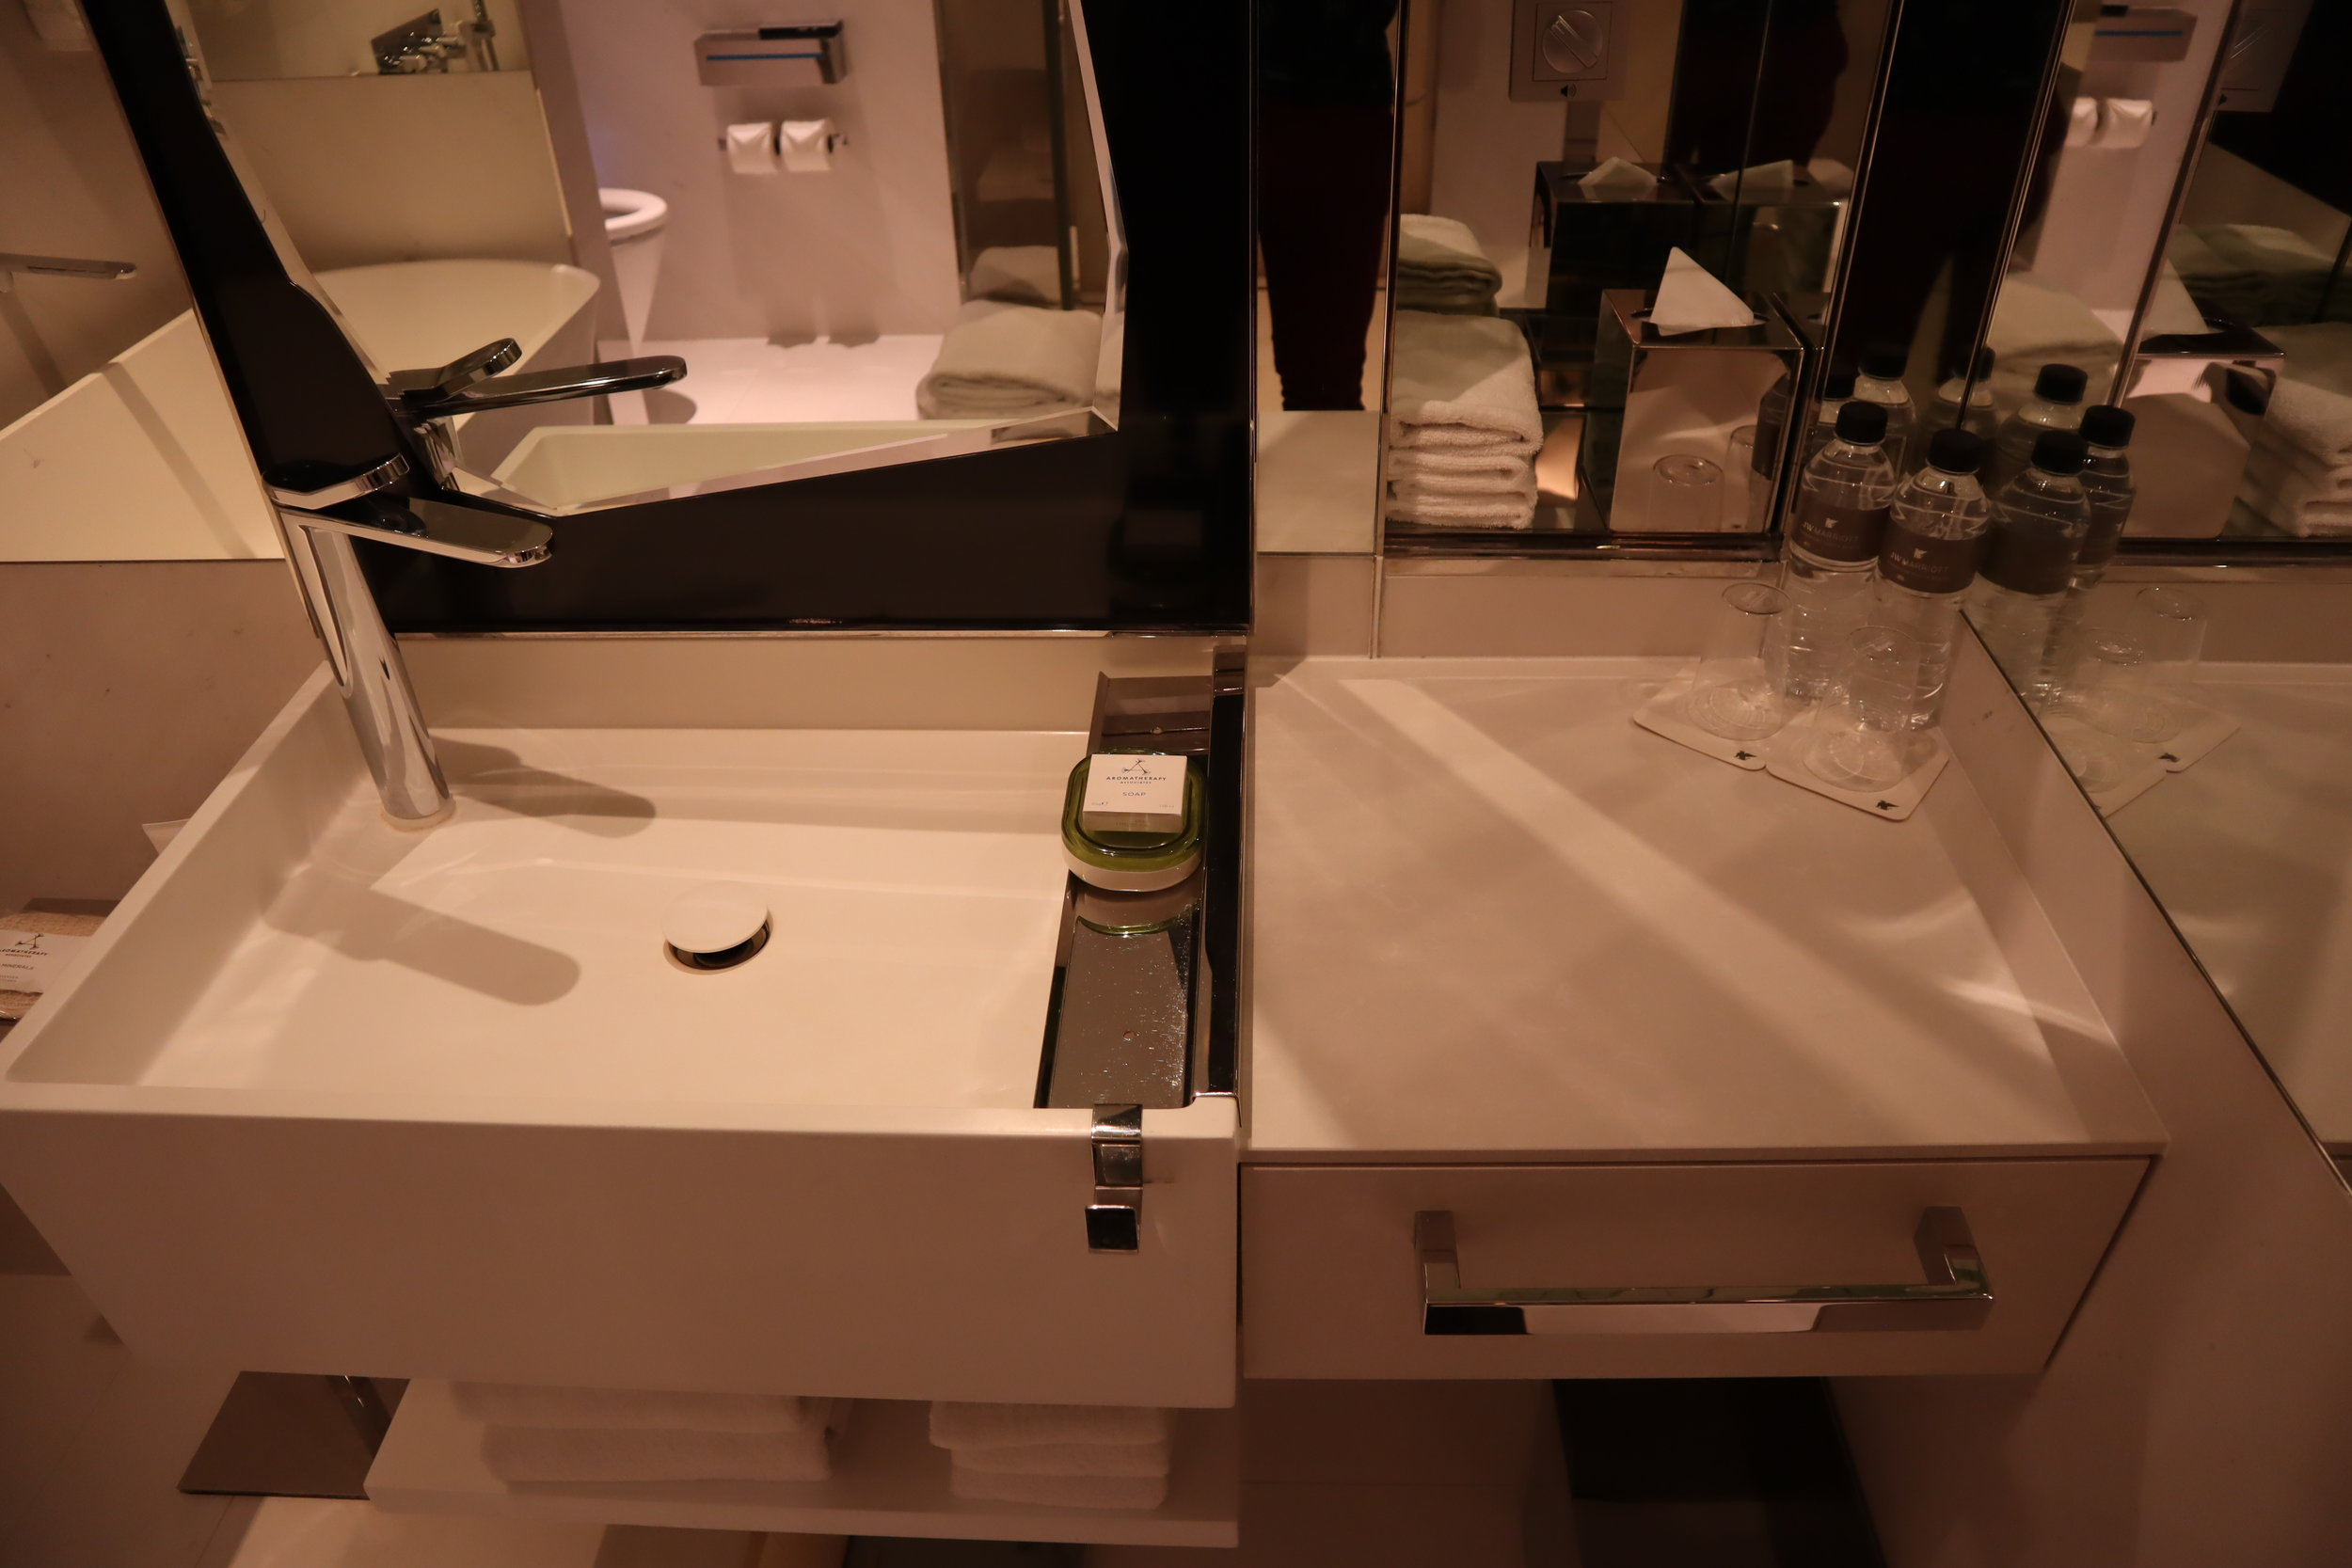 JW Marriott Singapore South Beach – Sink and mirror